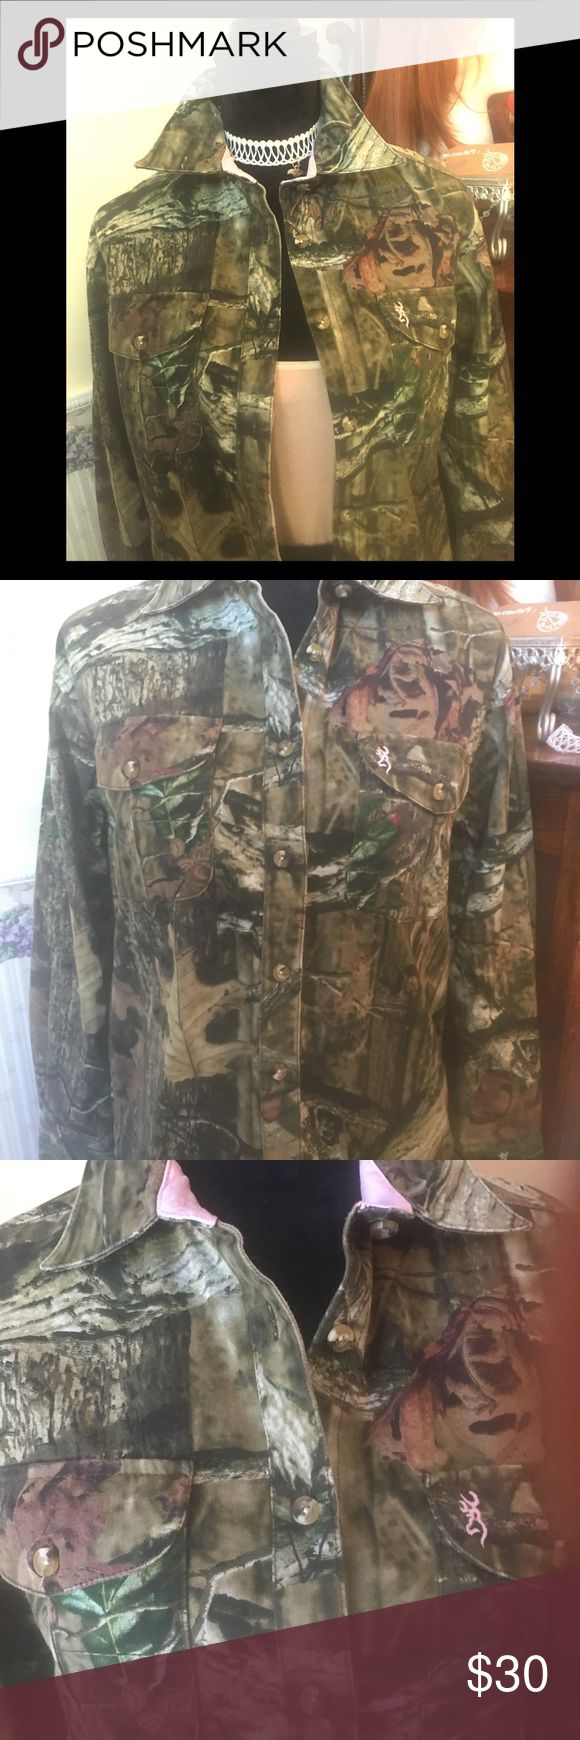 Browning & co. Camouflage shirt This has never been worn. Finally, outdoor ladies, like me, don't have to wear guys shirts.  Women's cut and softness with a bit of sexiness as well. Browning & co. Tops Button Down Shirts